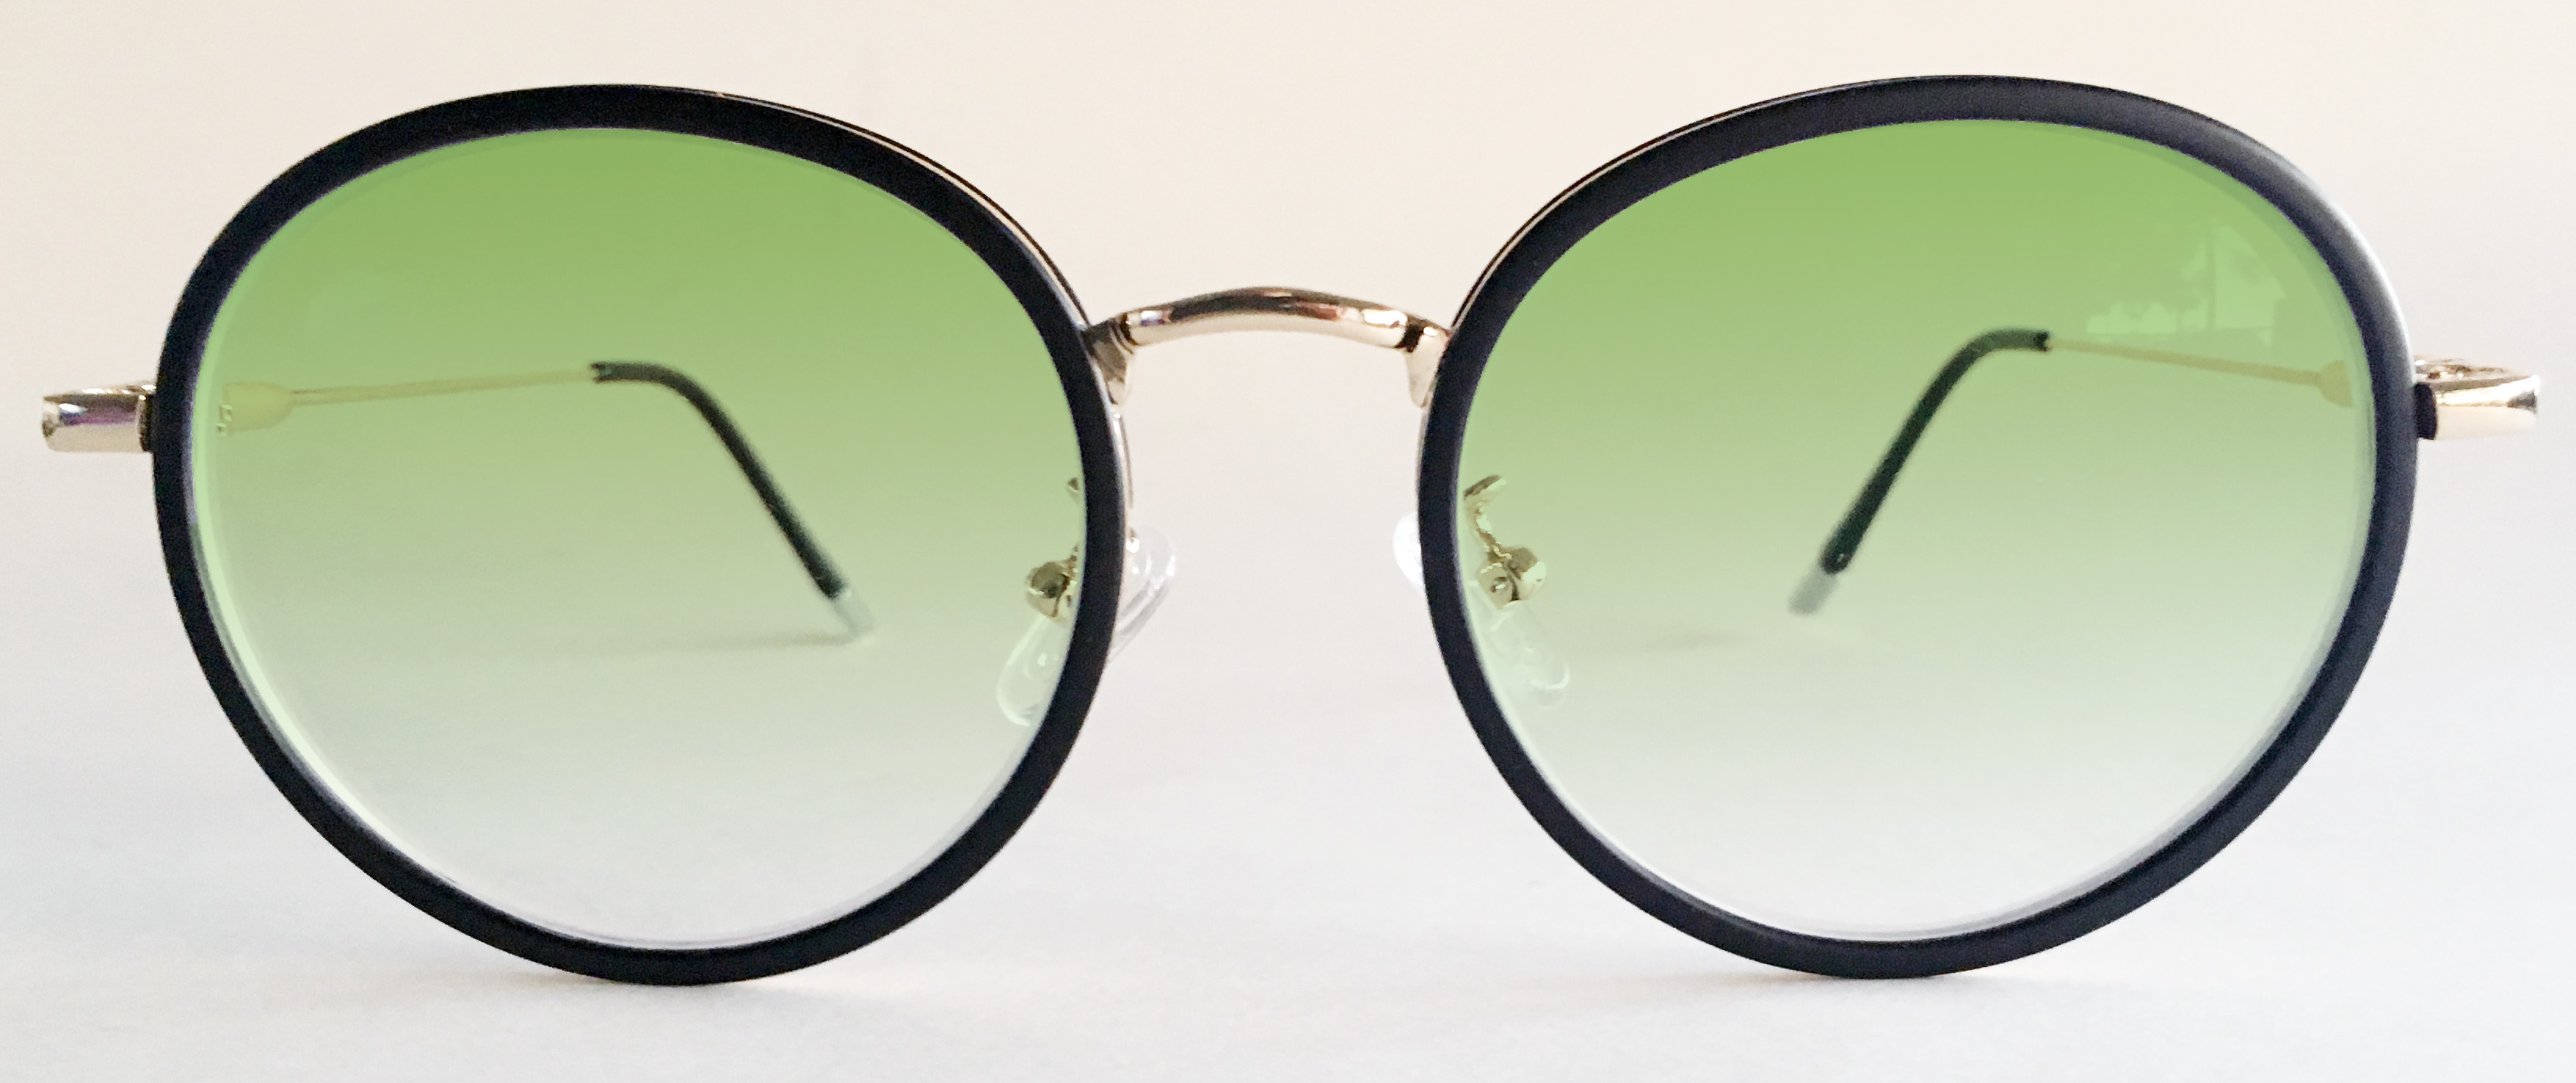 Green tinted round glasses